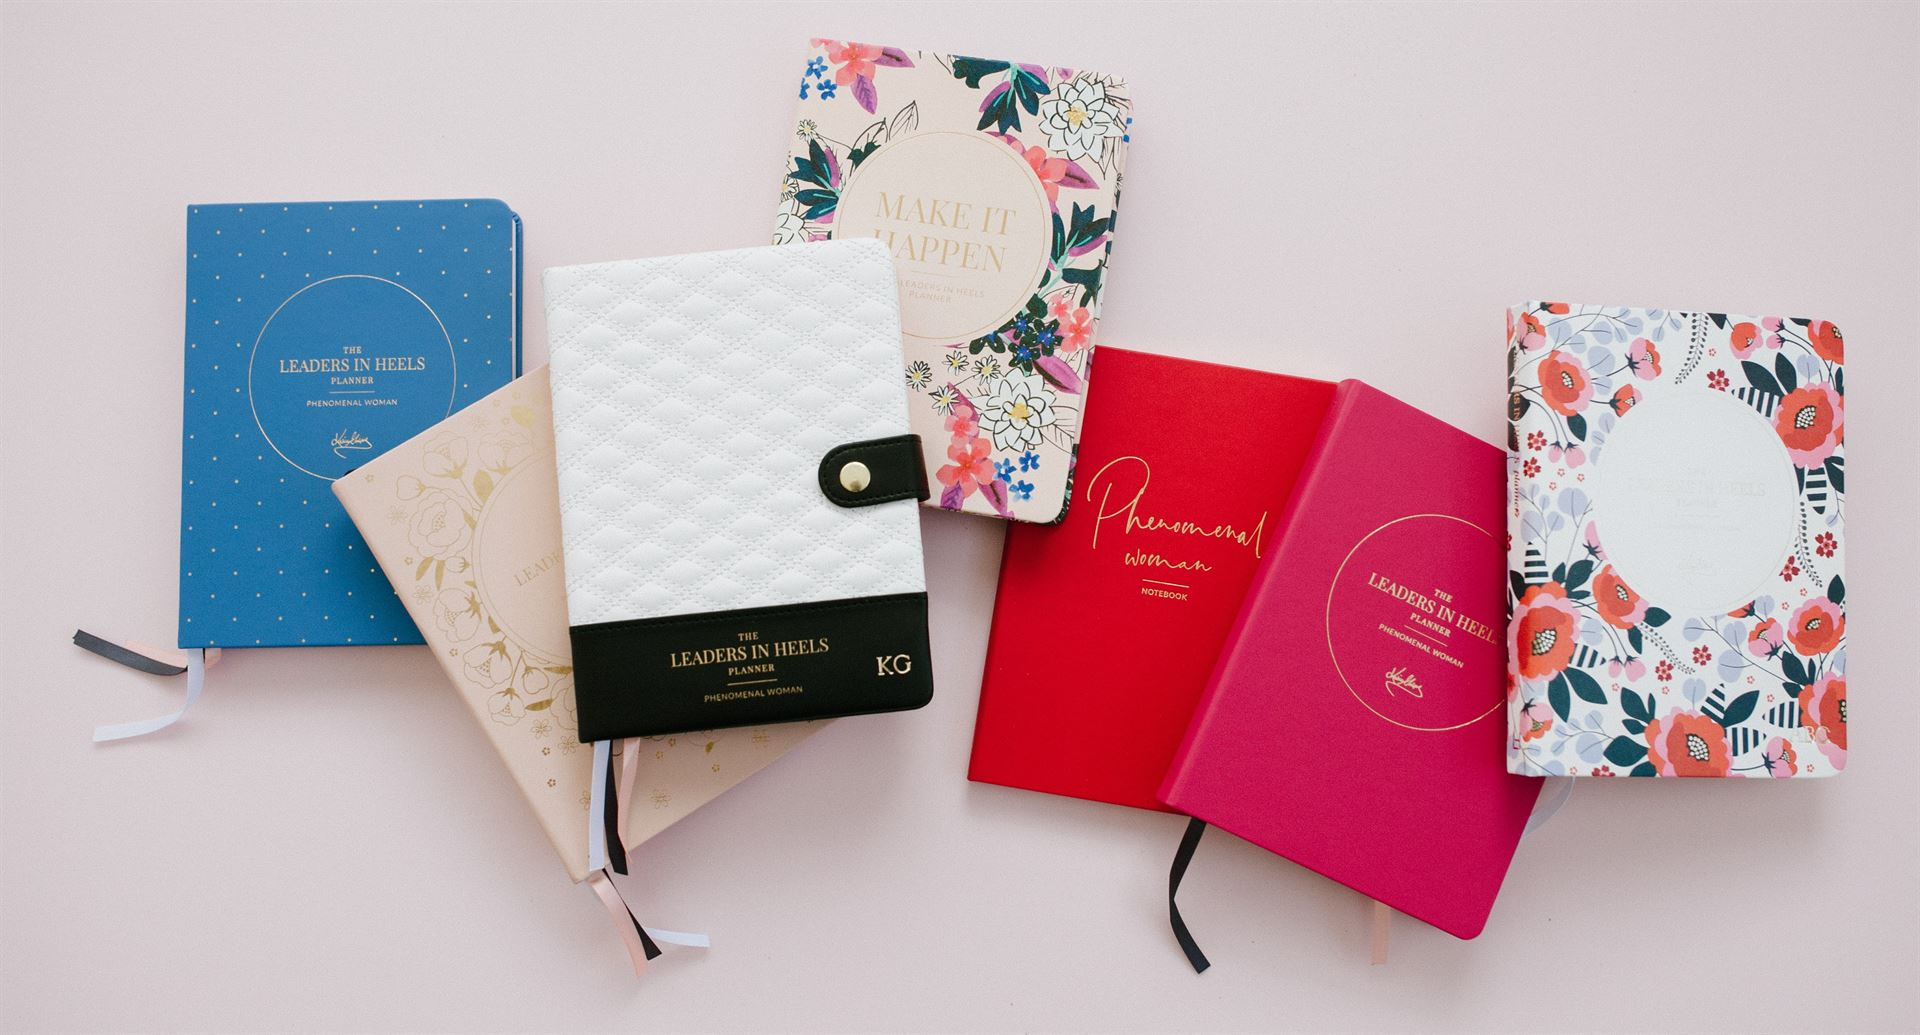 Inspirational notebooks, journals, planners, stationery